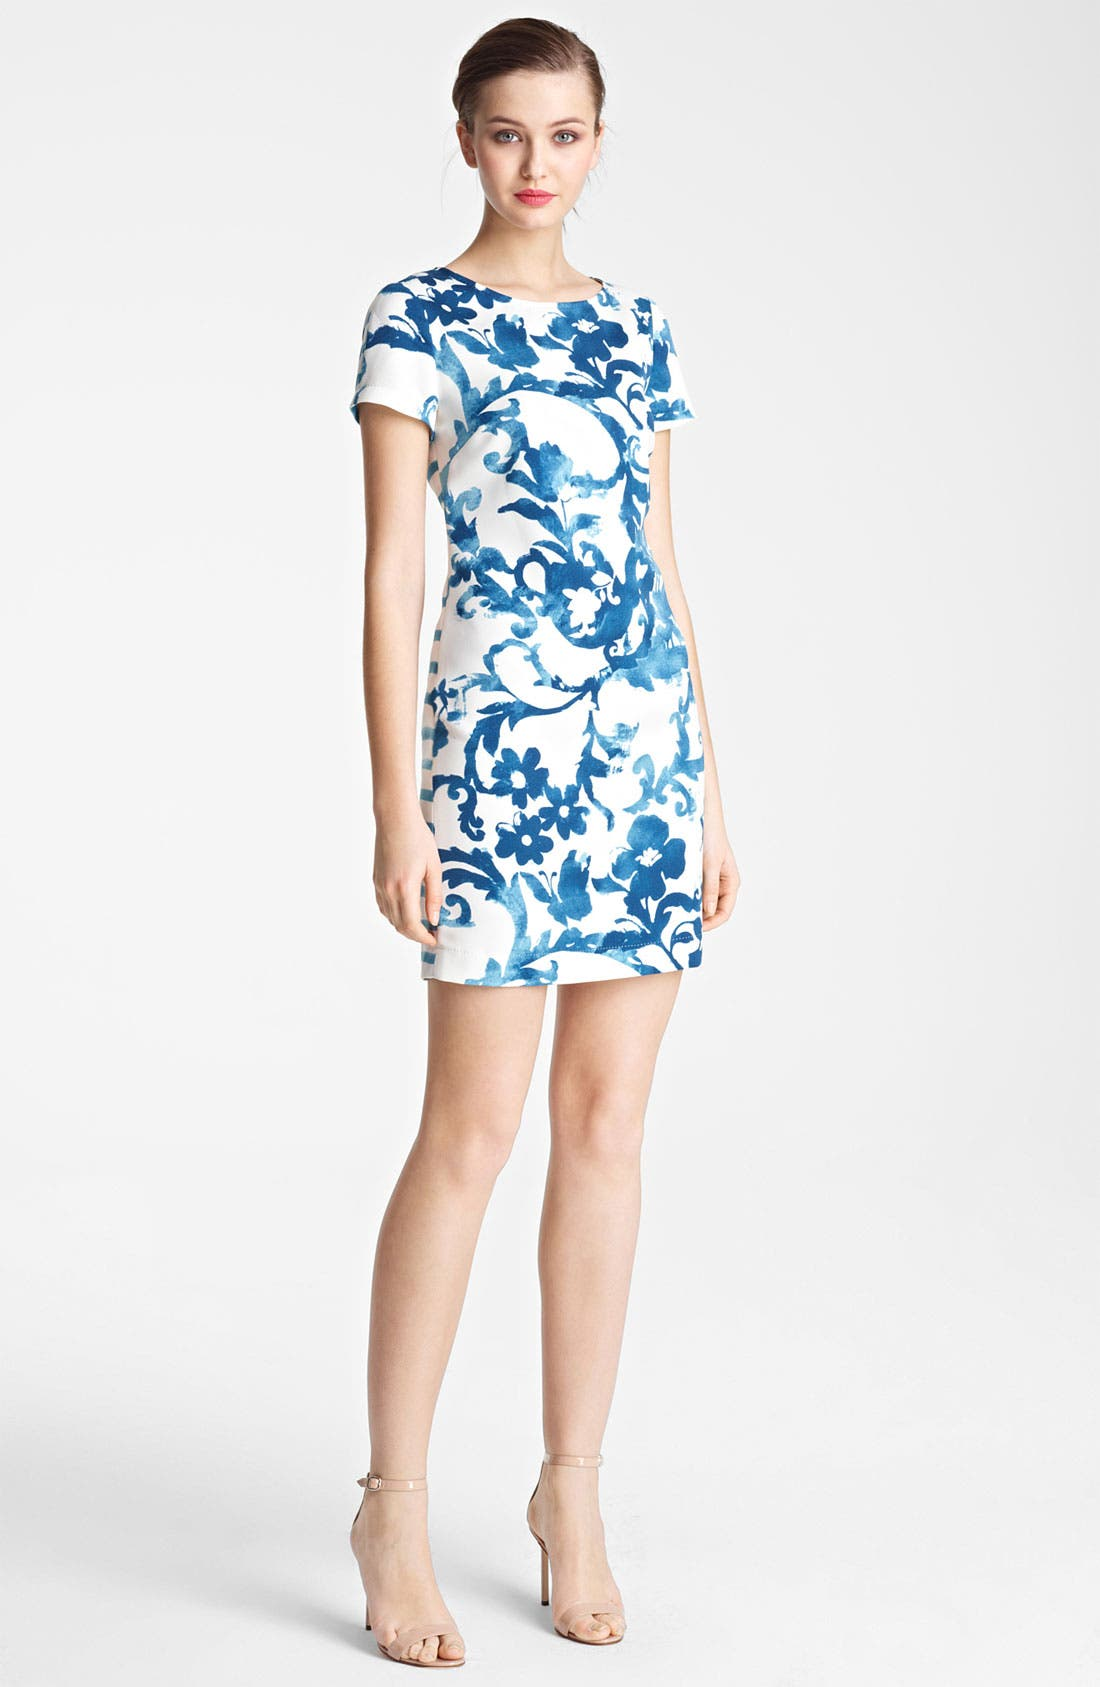 Main Image - Moschino Cheap & Chic Mix Print Dress